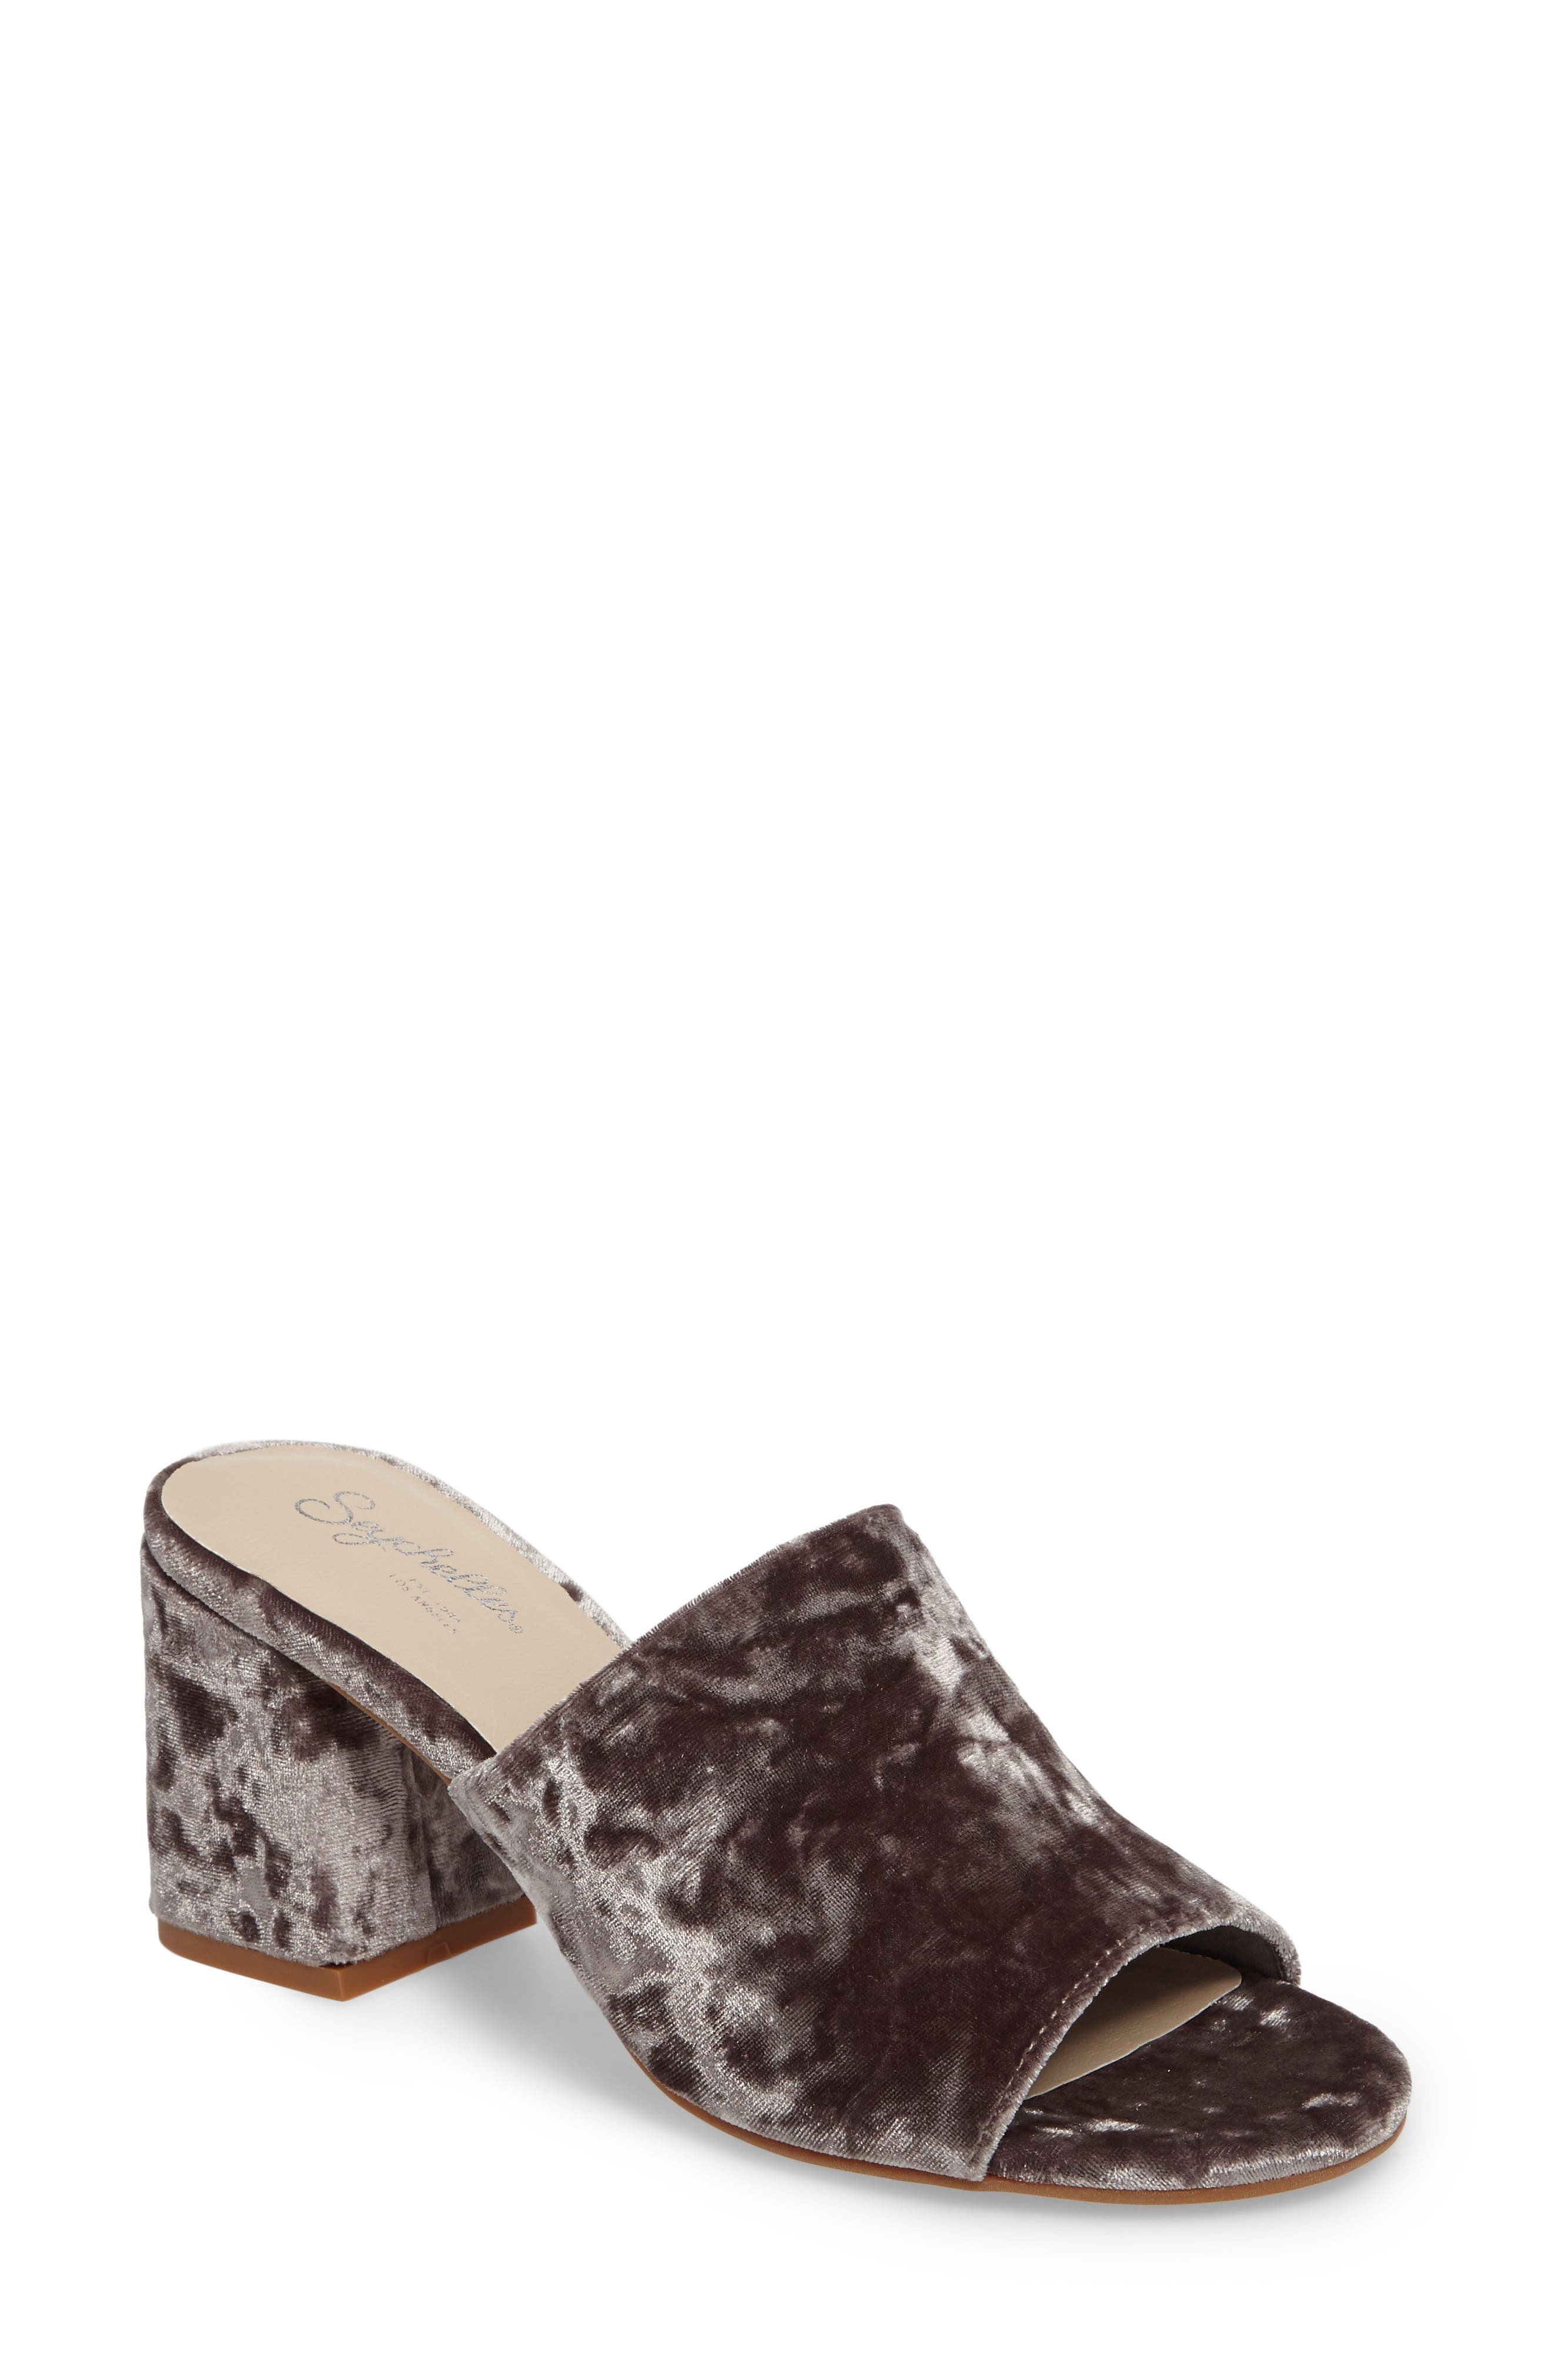 Commute Flared Heel Slide Sandal,                         Main,                         color, Grey Velvet Fabric